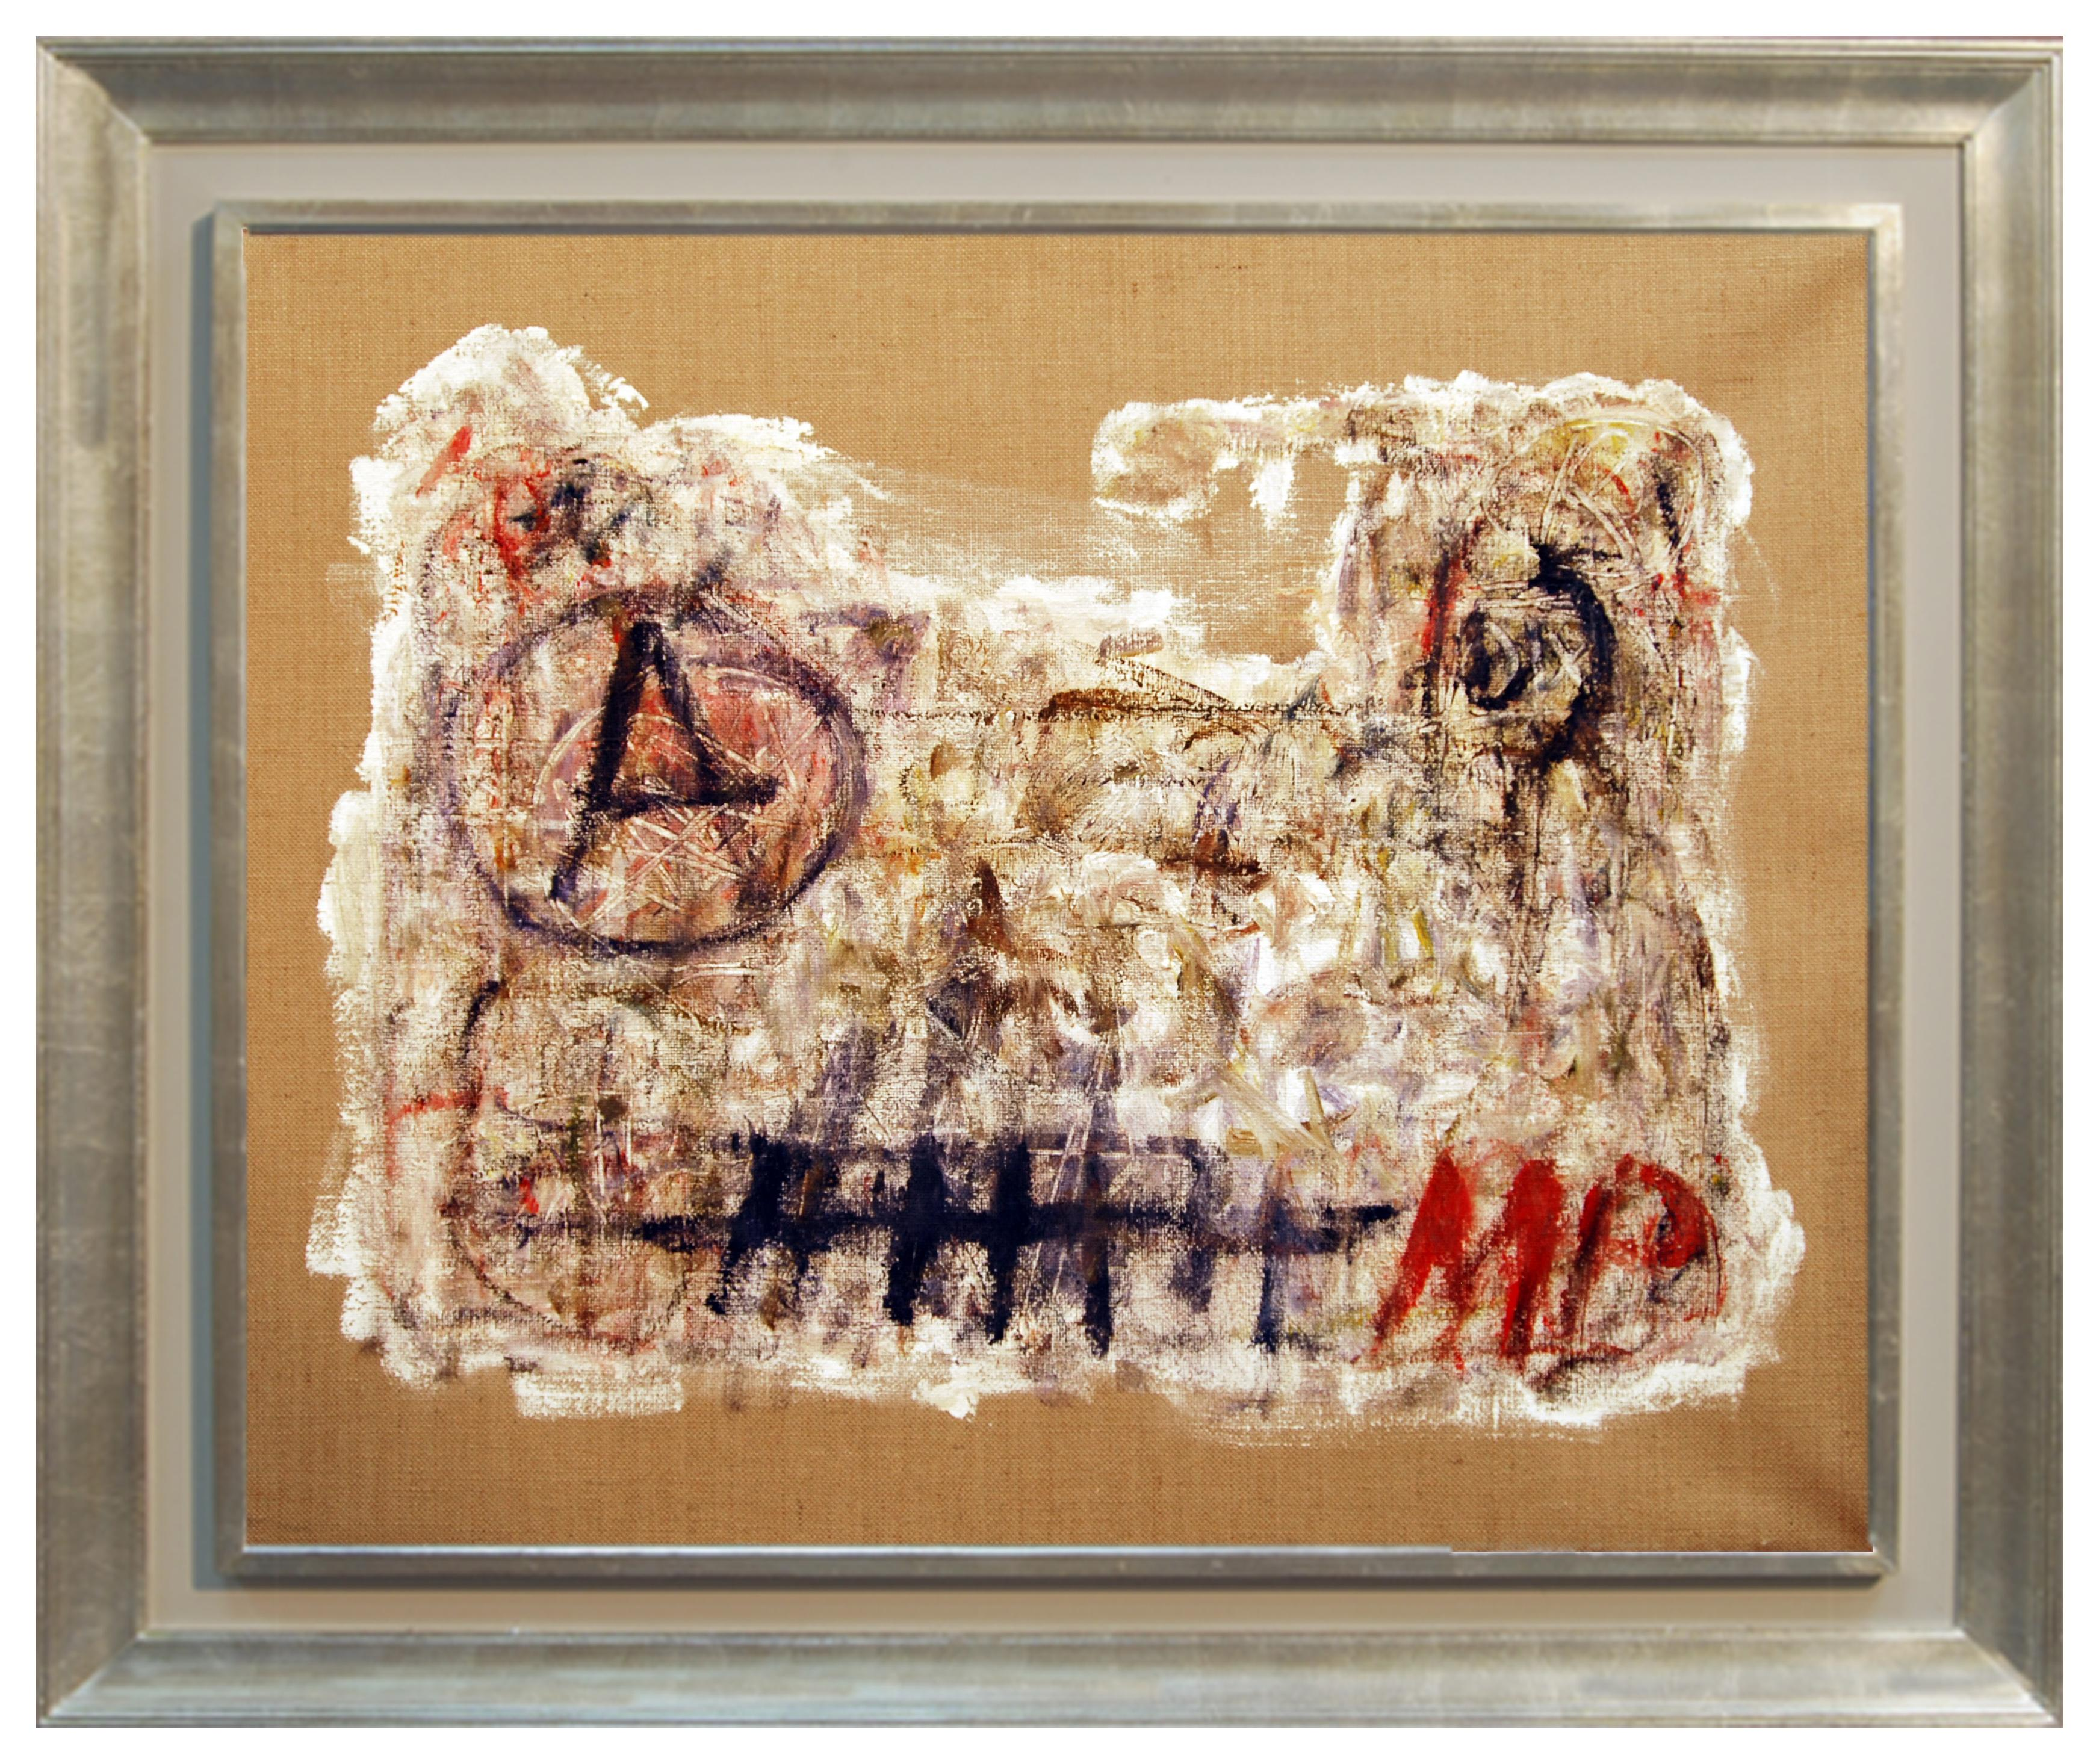 FIND N.6 - Italian abstract oil on canvas panting, Massimo D'Orta